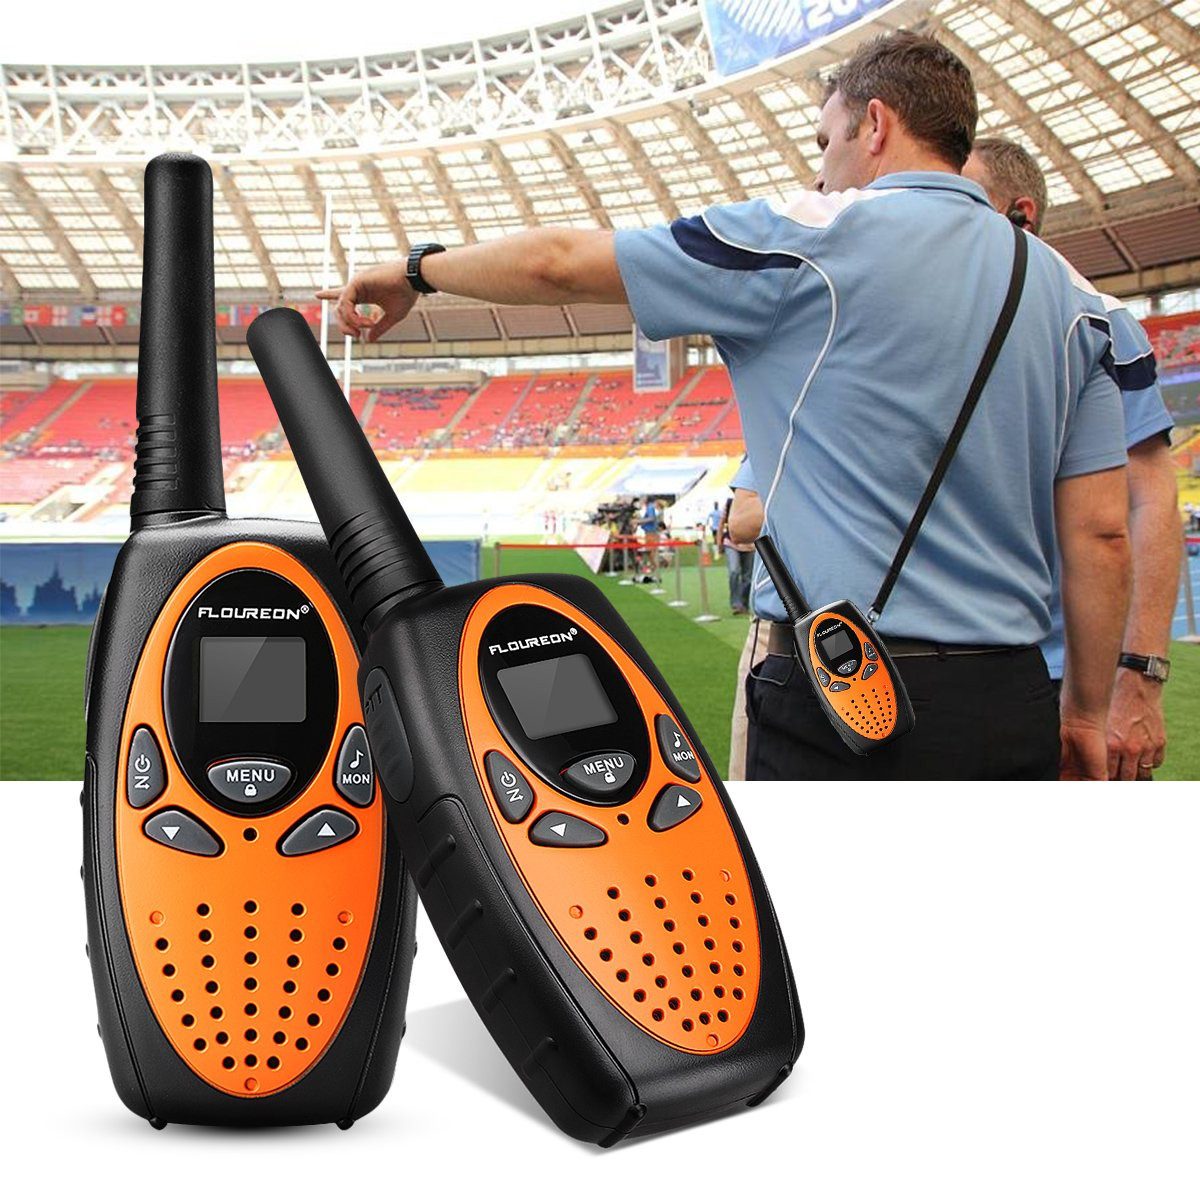 FLOUREON 4X PMR Funkgerät Walkie Talkies 8 Kanäle Walki Talki 2-Wege Radio mit LC-Display Orange